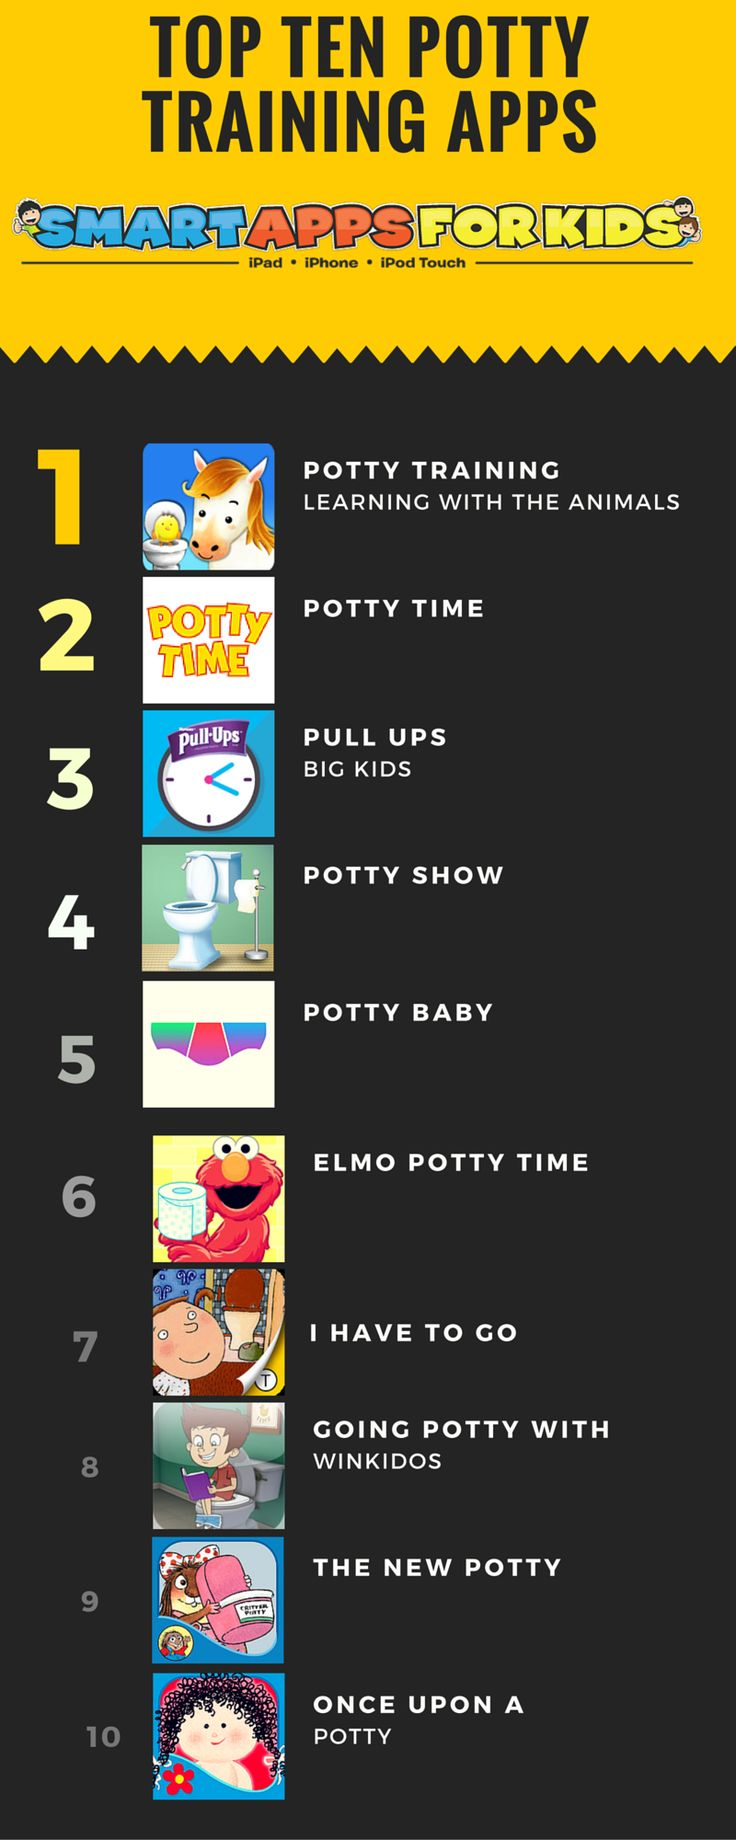 Top Ten Potty Training Apps for Kids - list from smartappsforkids PottyThose of you who aren't currently potty training a child might not look upon this list with the same glee as the parents of a three-year-old boy who refuses to pee anywhere except in h